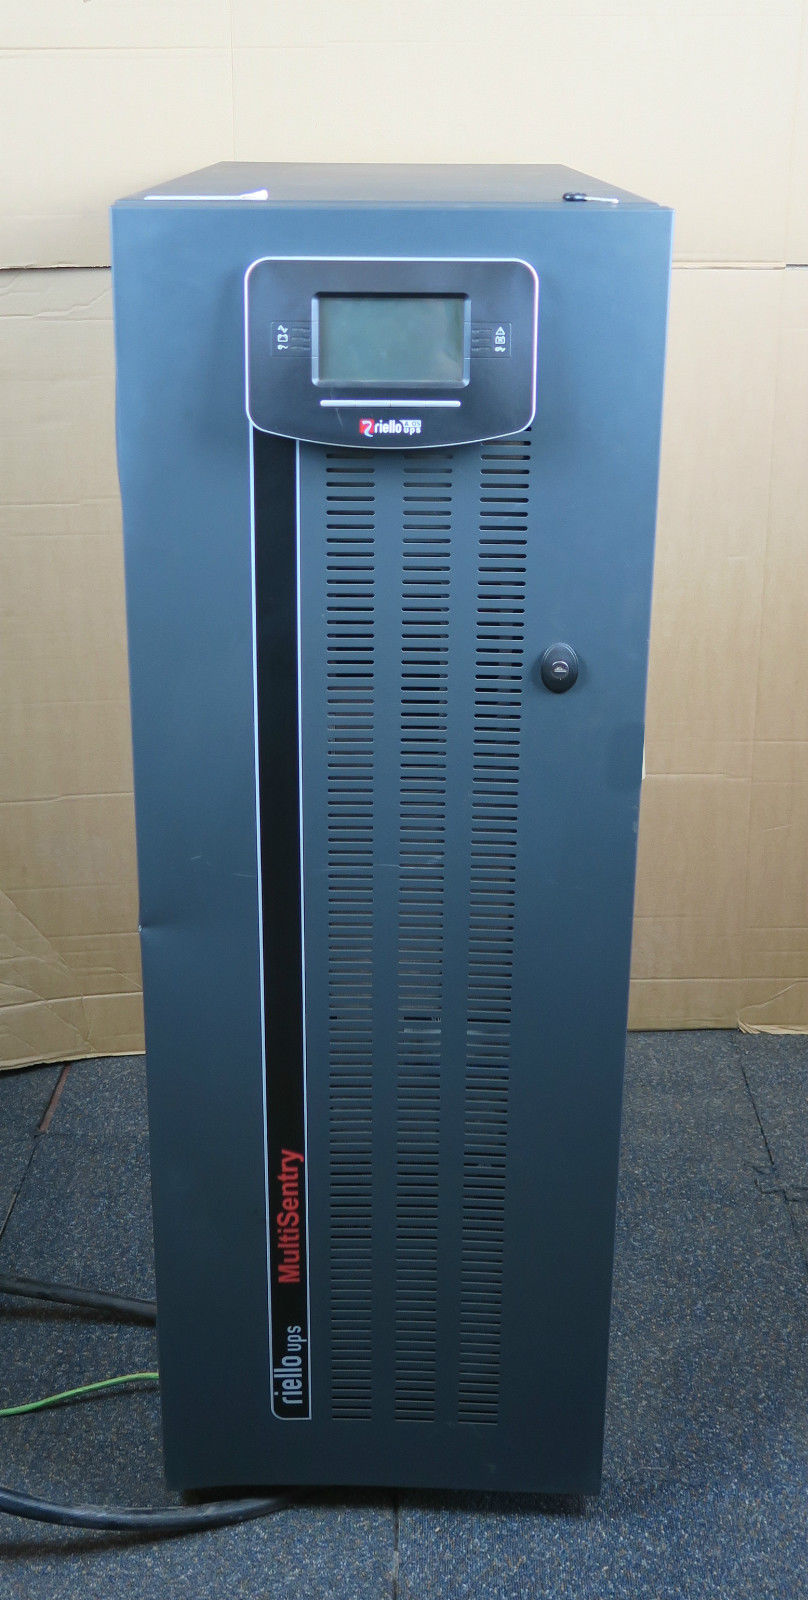 Riello Multi Sentry MST 40-T4 - 40kVA MST UPS T4 Uninterruptible Power  Supply